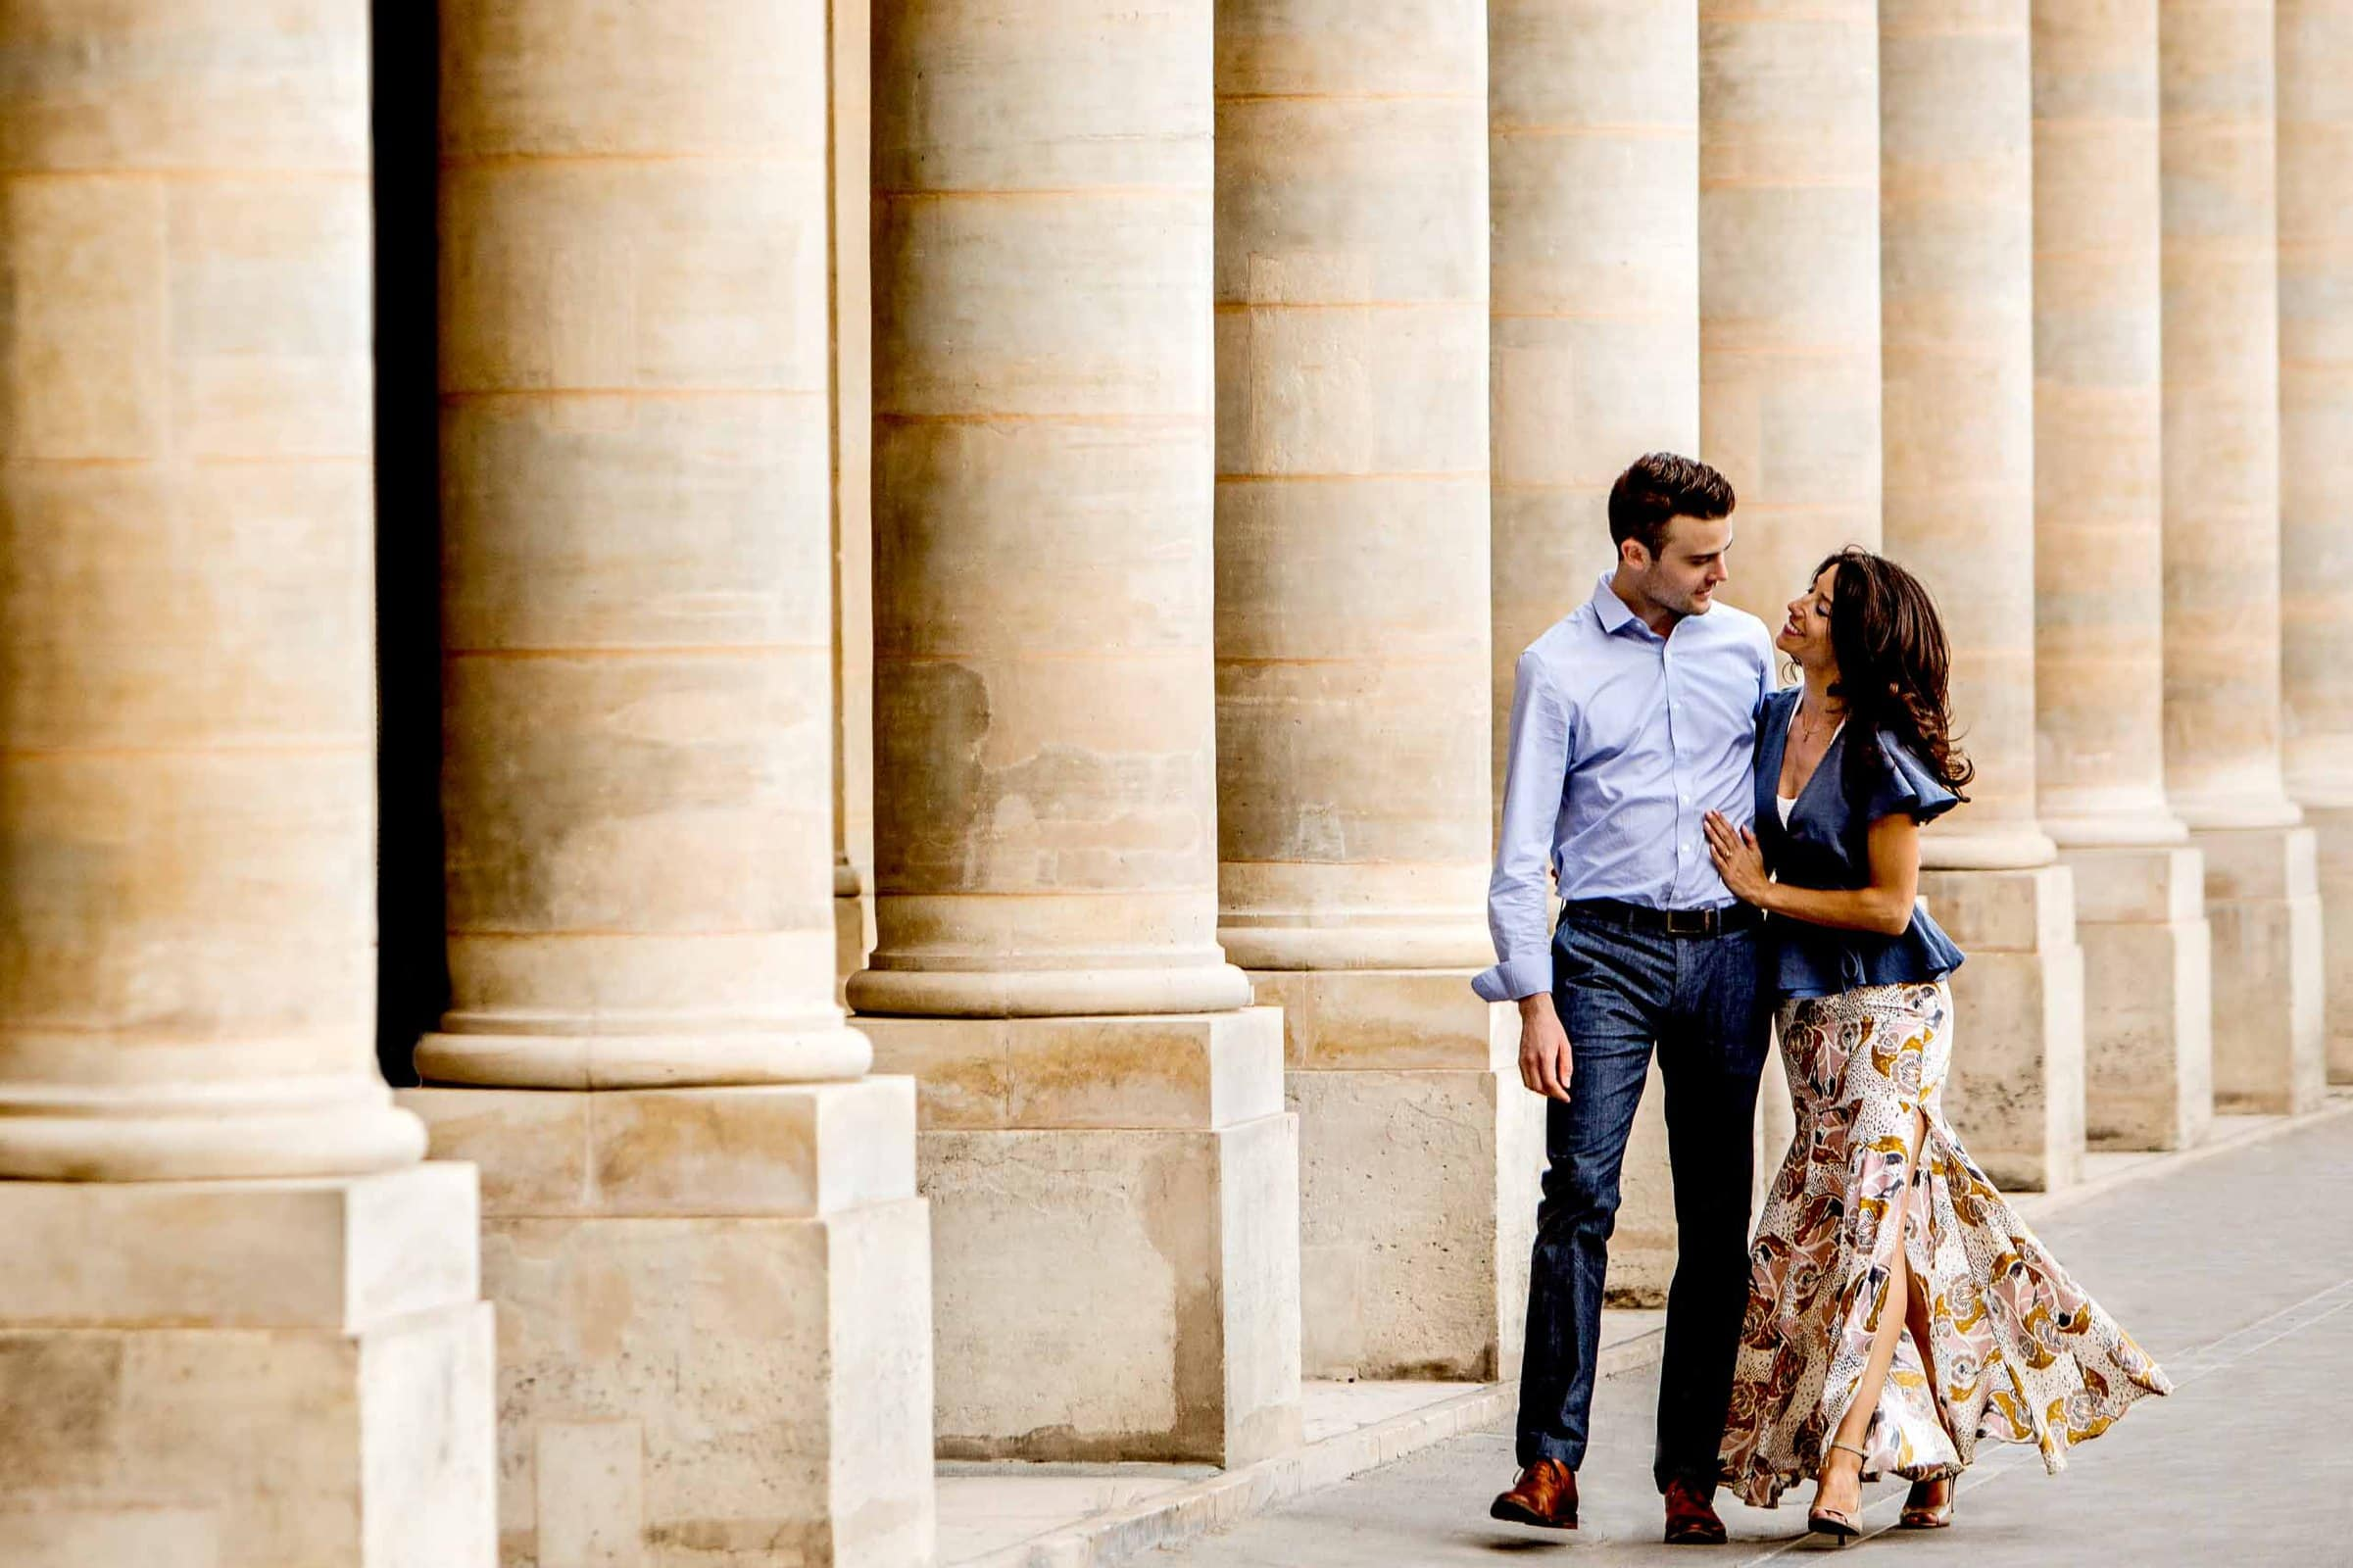 A creative portrait of a walking running near the Louvre during their Paris engagement photo session